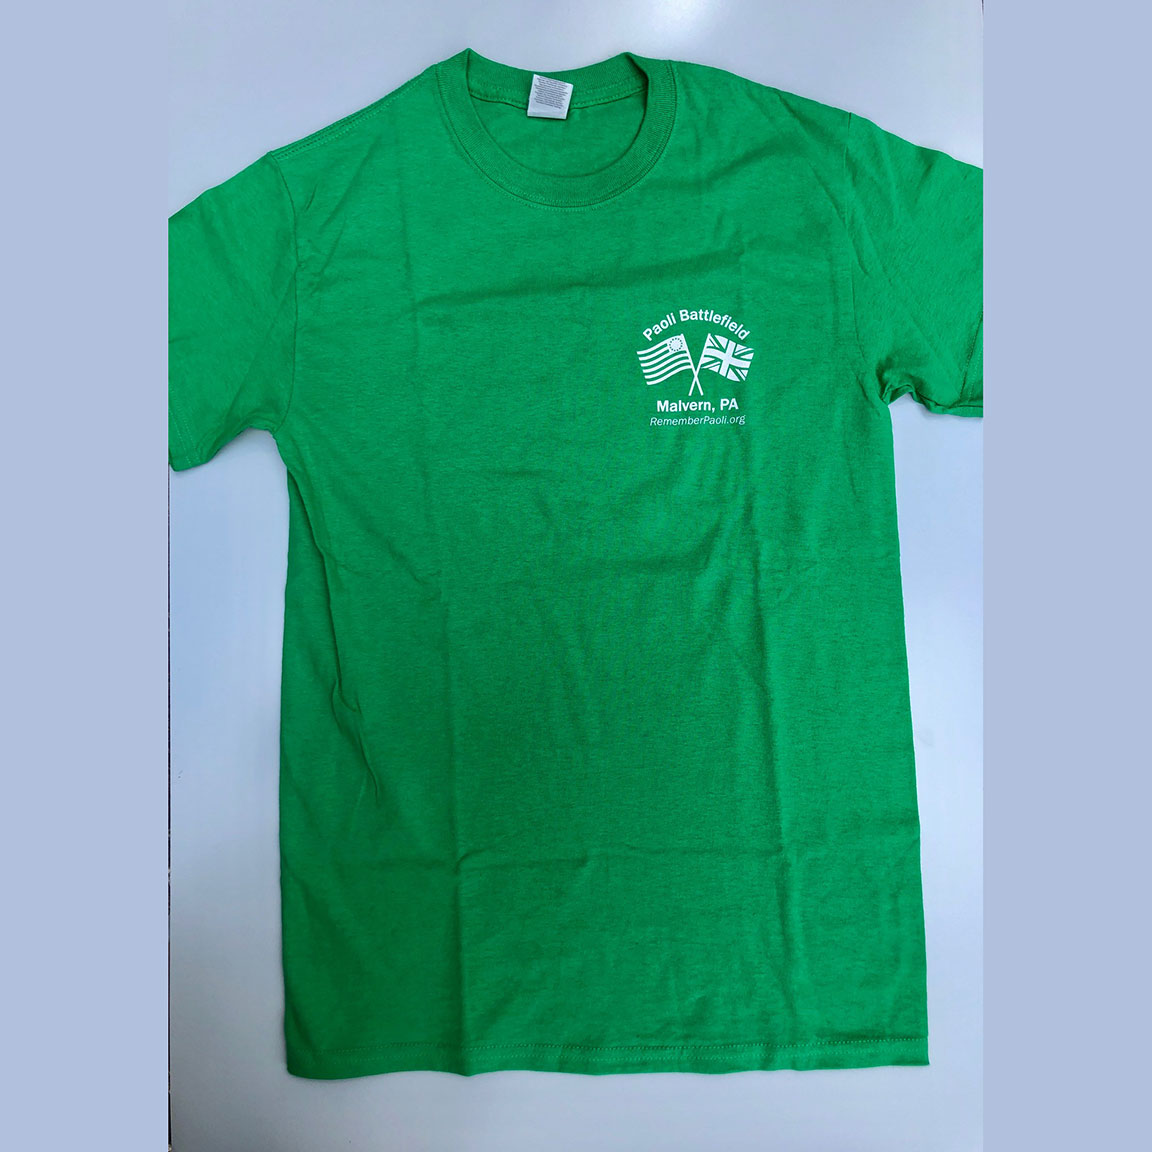 Remember Paoli Green Shirt - Front